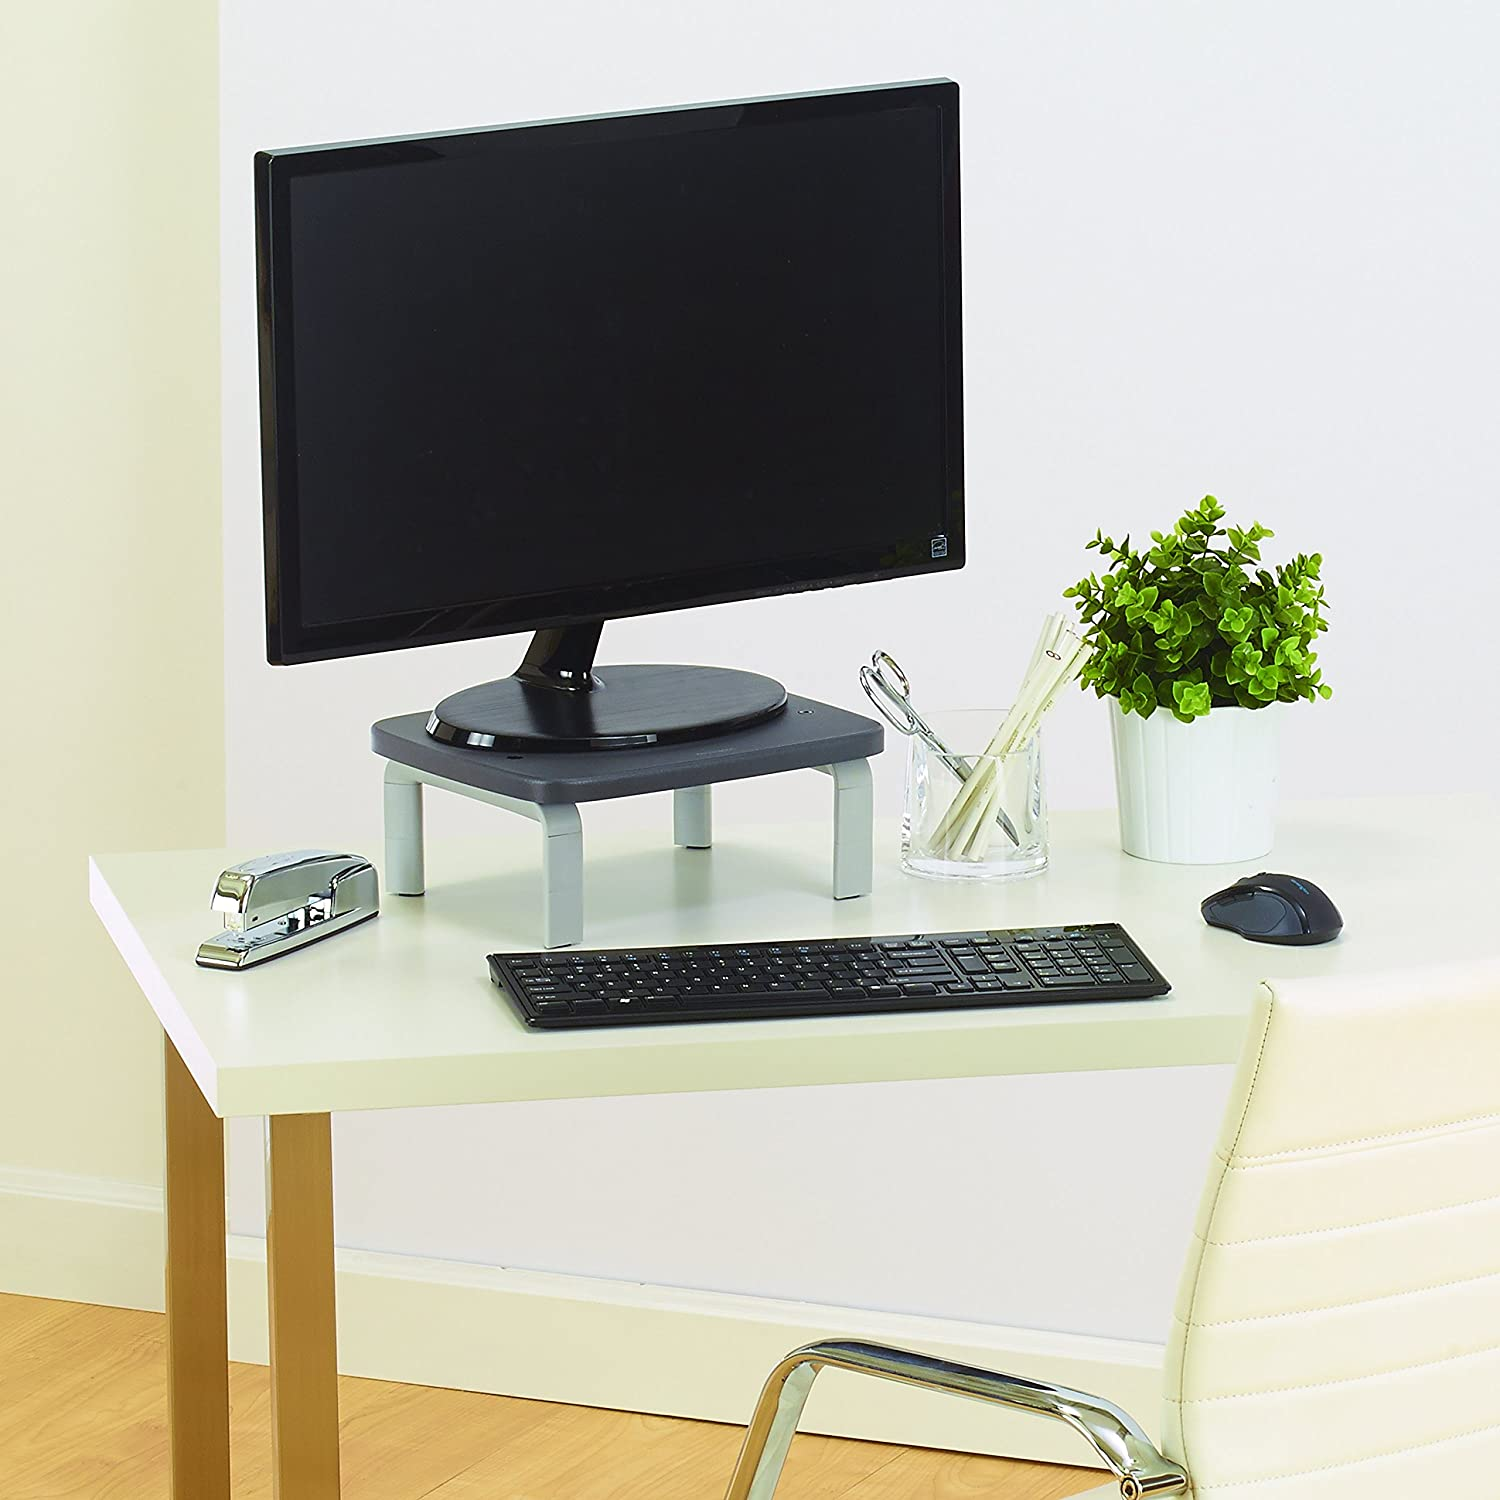 "Amazon.com: Kensington SmartFit Monitor Stand for up to 21"" screens ..."